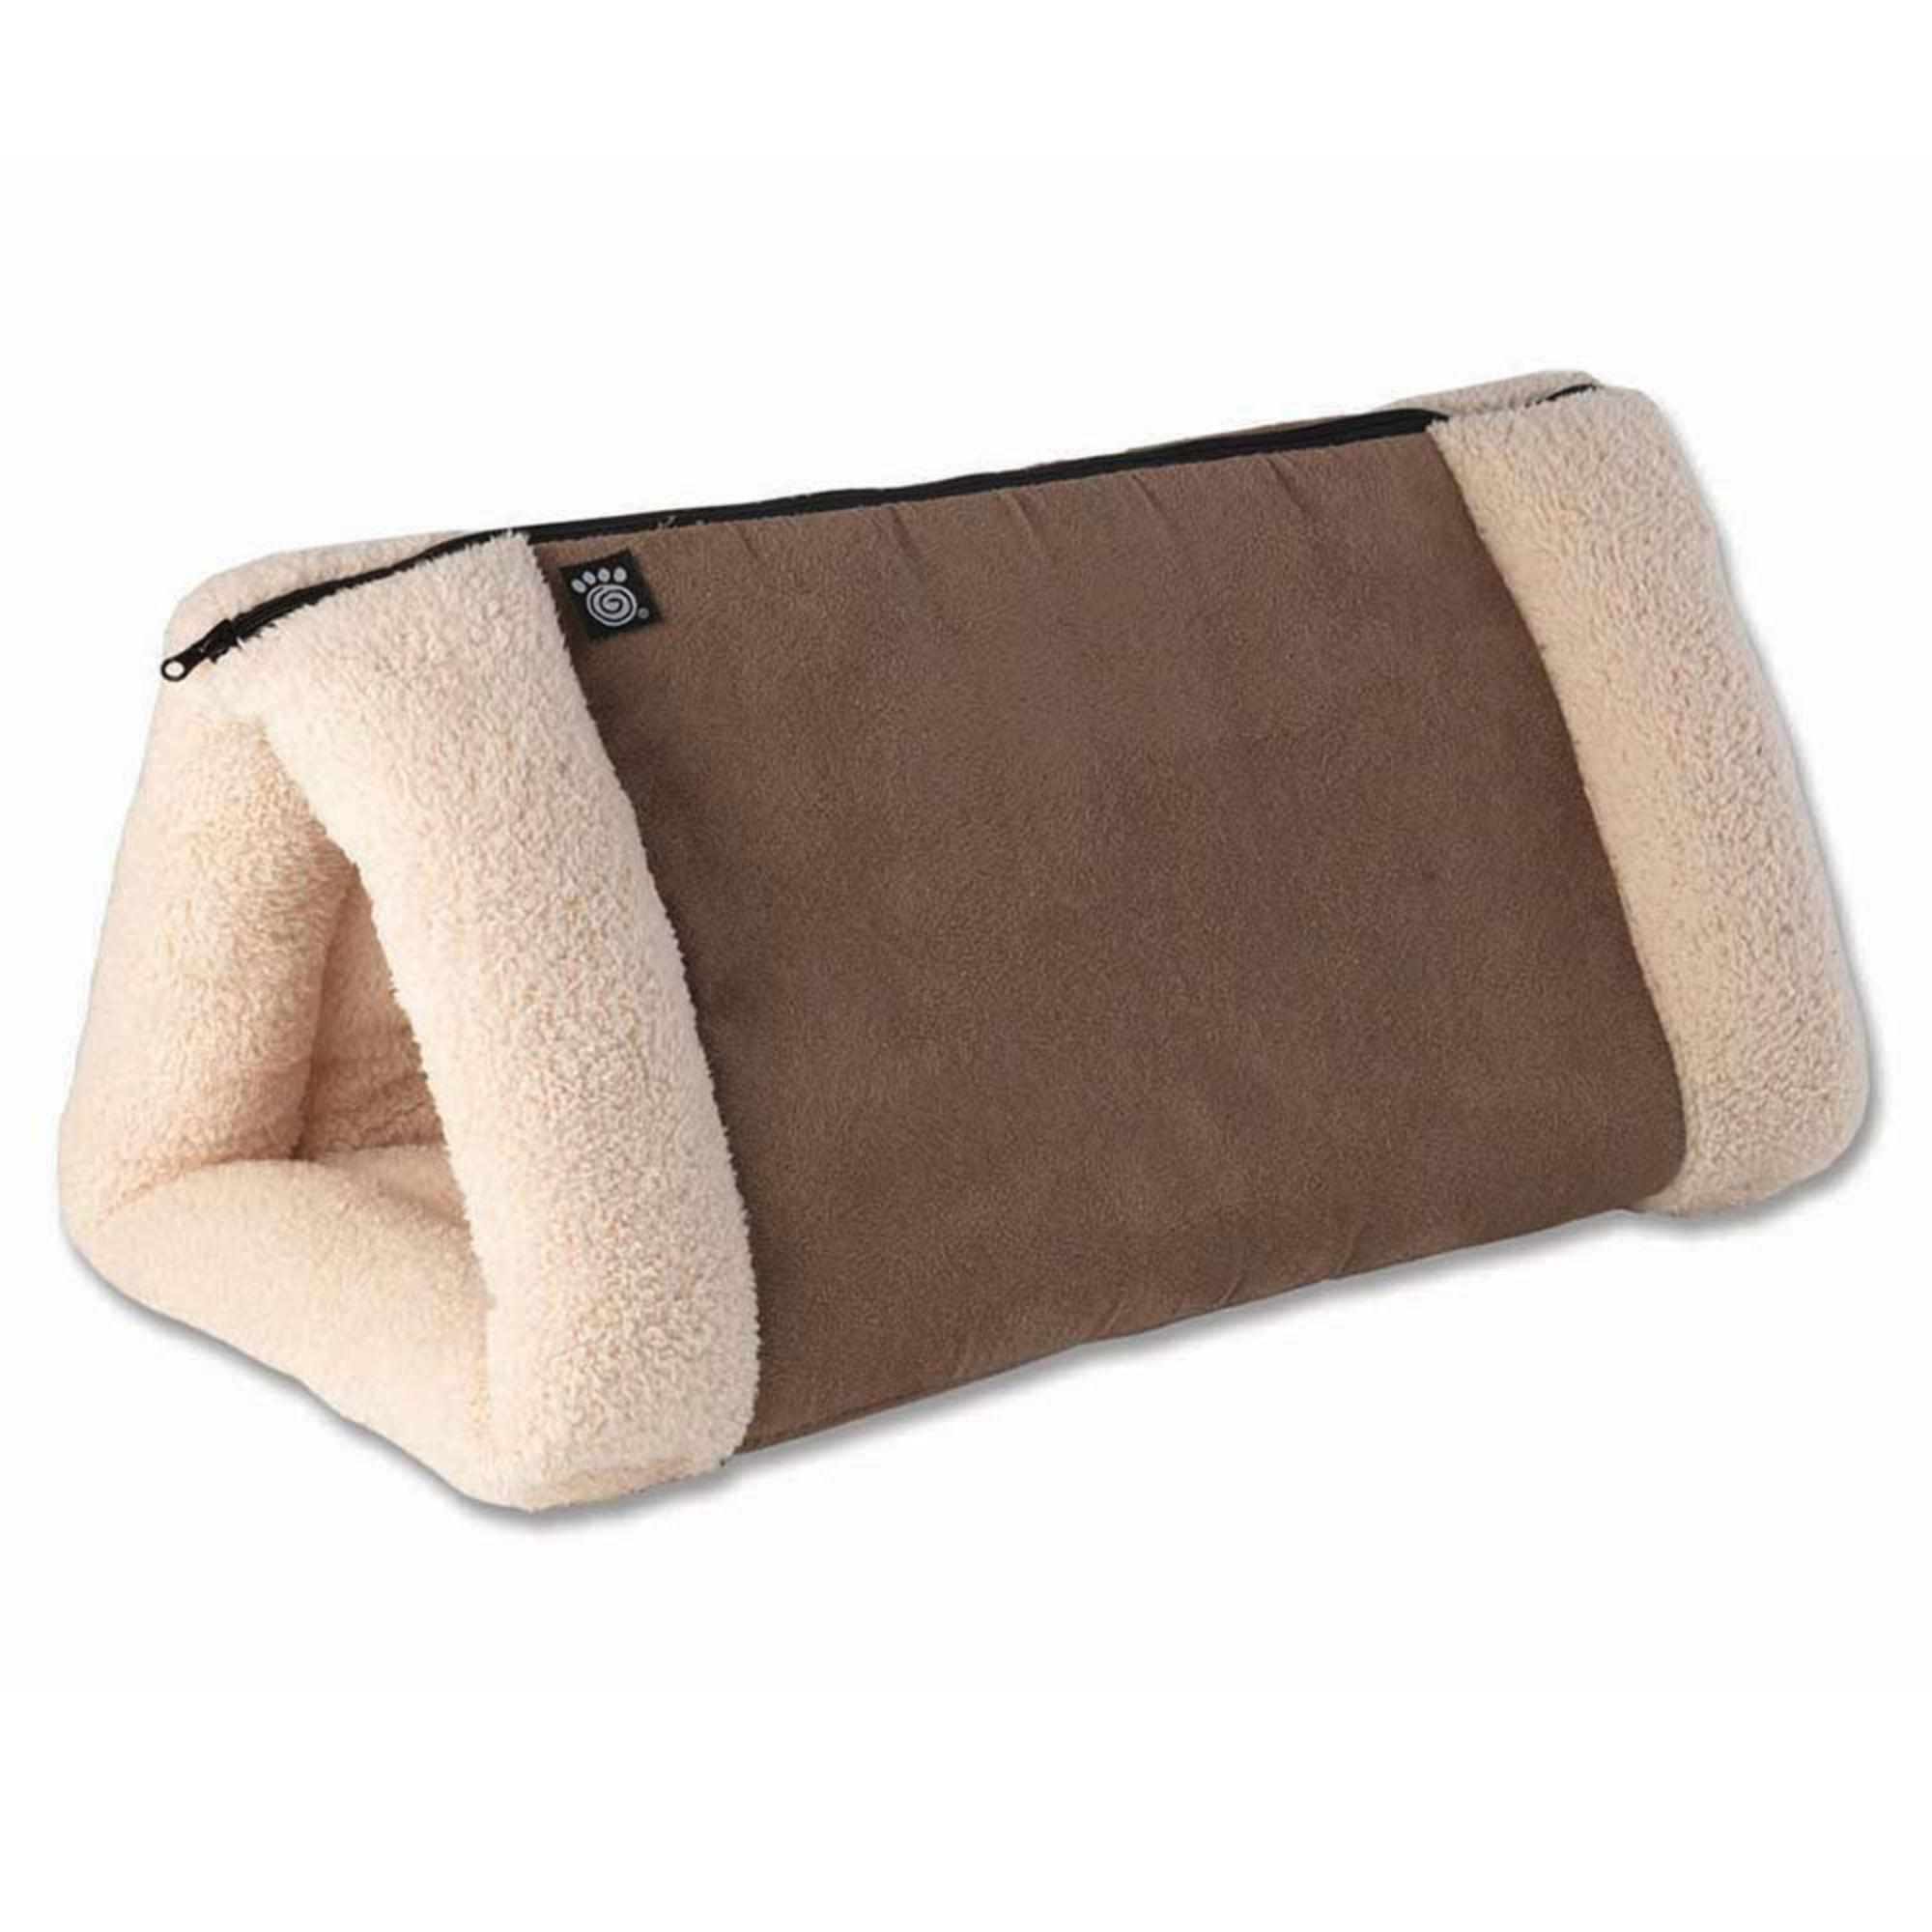 Jasper's 2 in 1 Travel Mat - Mocha/Cream